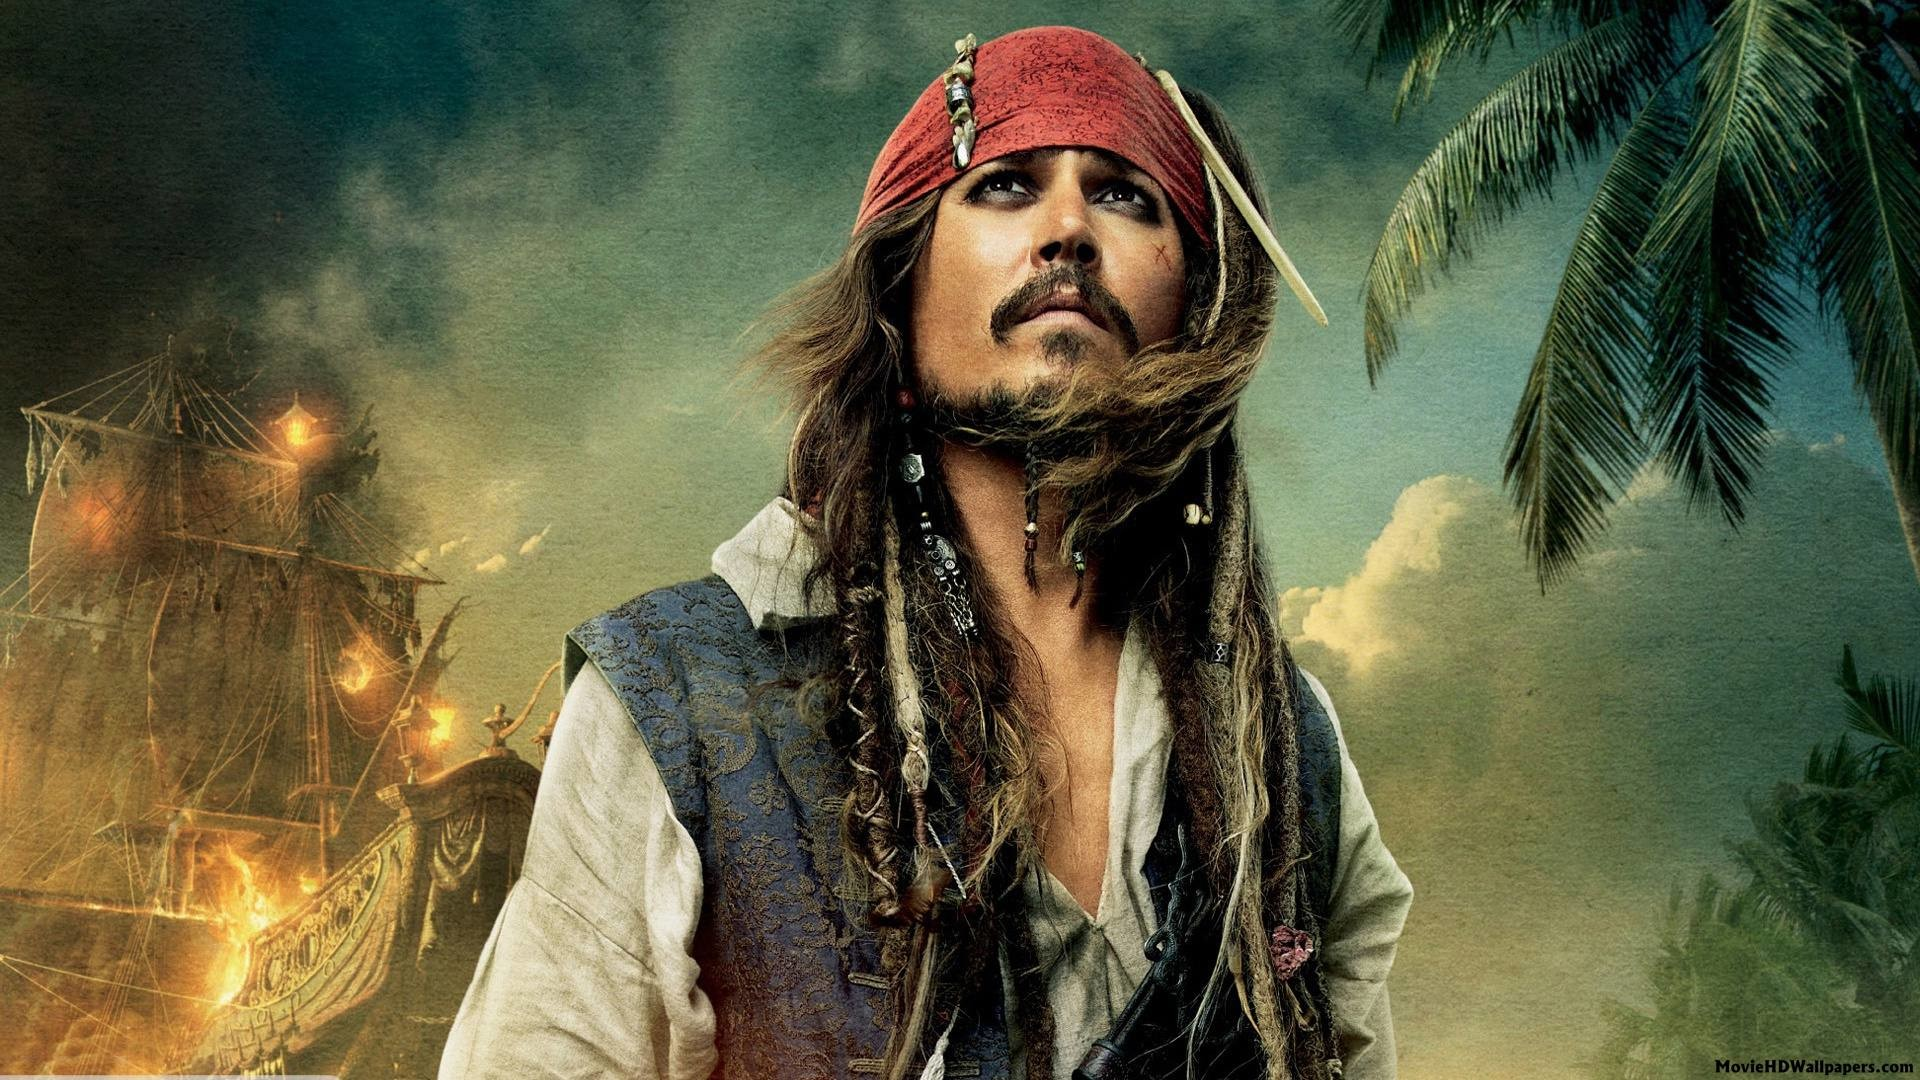 Pirates Of The Caribbean Wallpaper (73+ Images